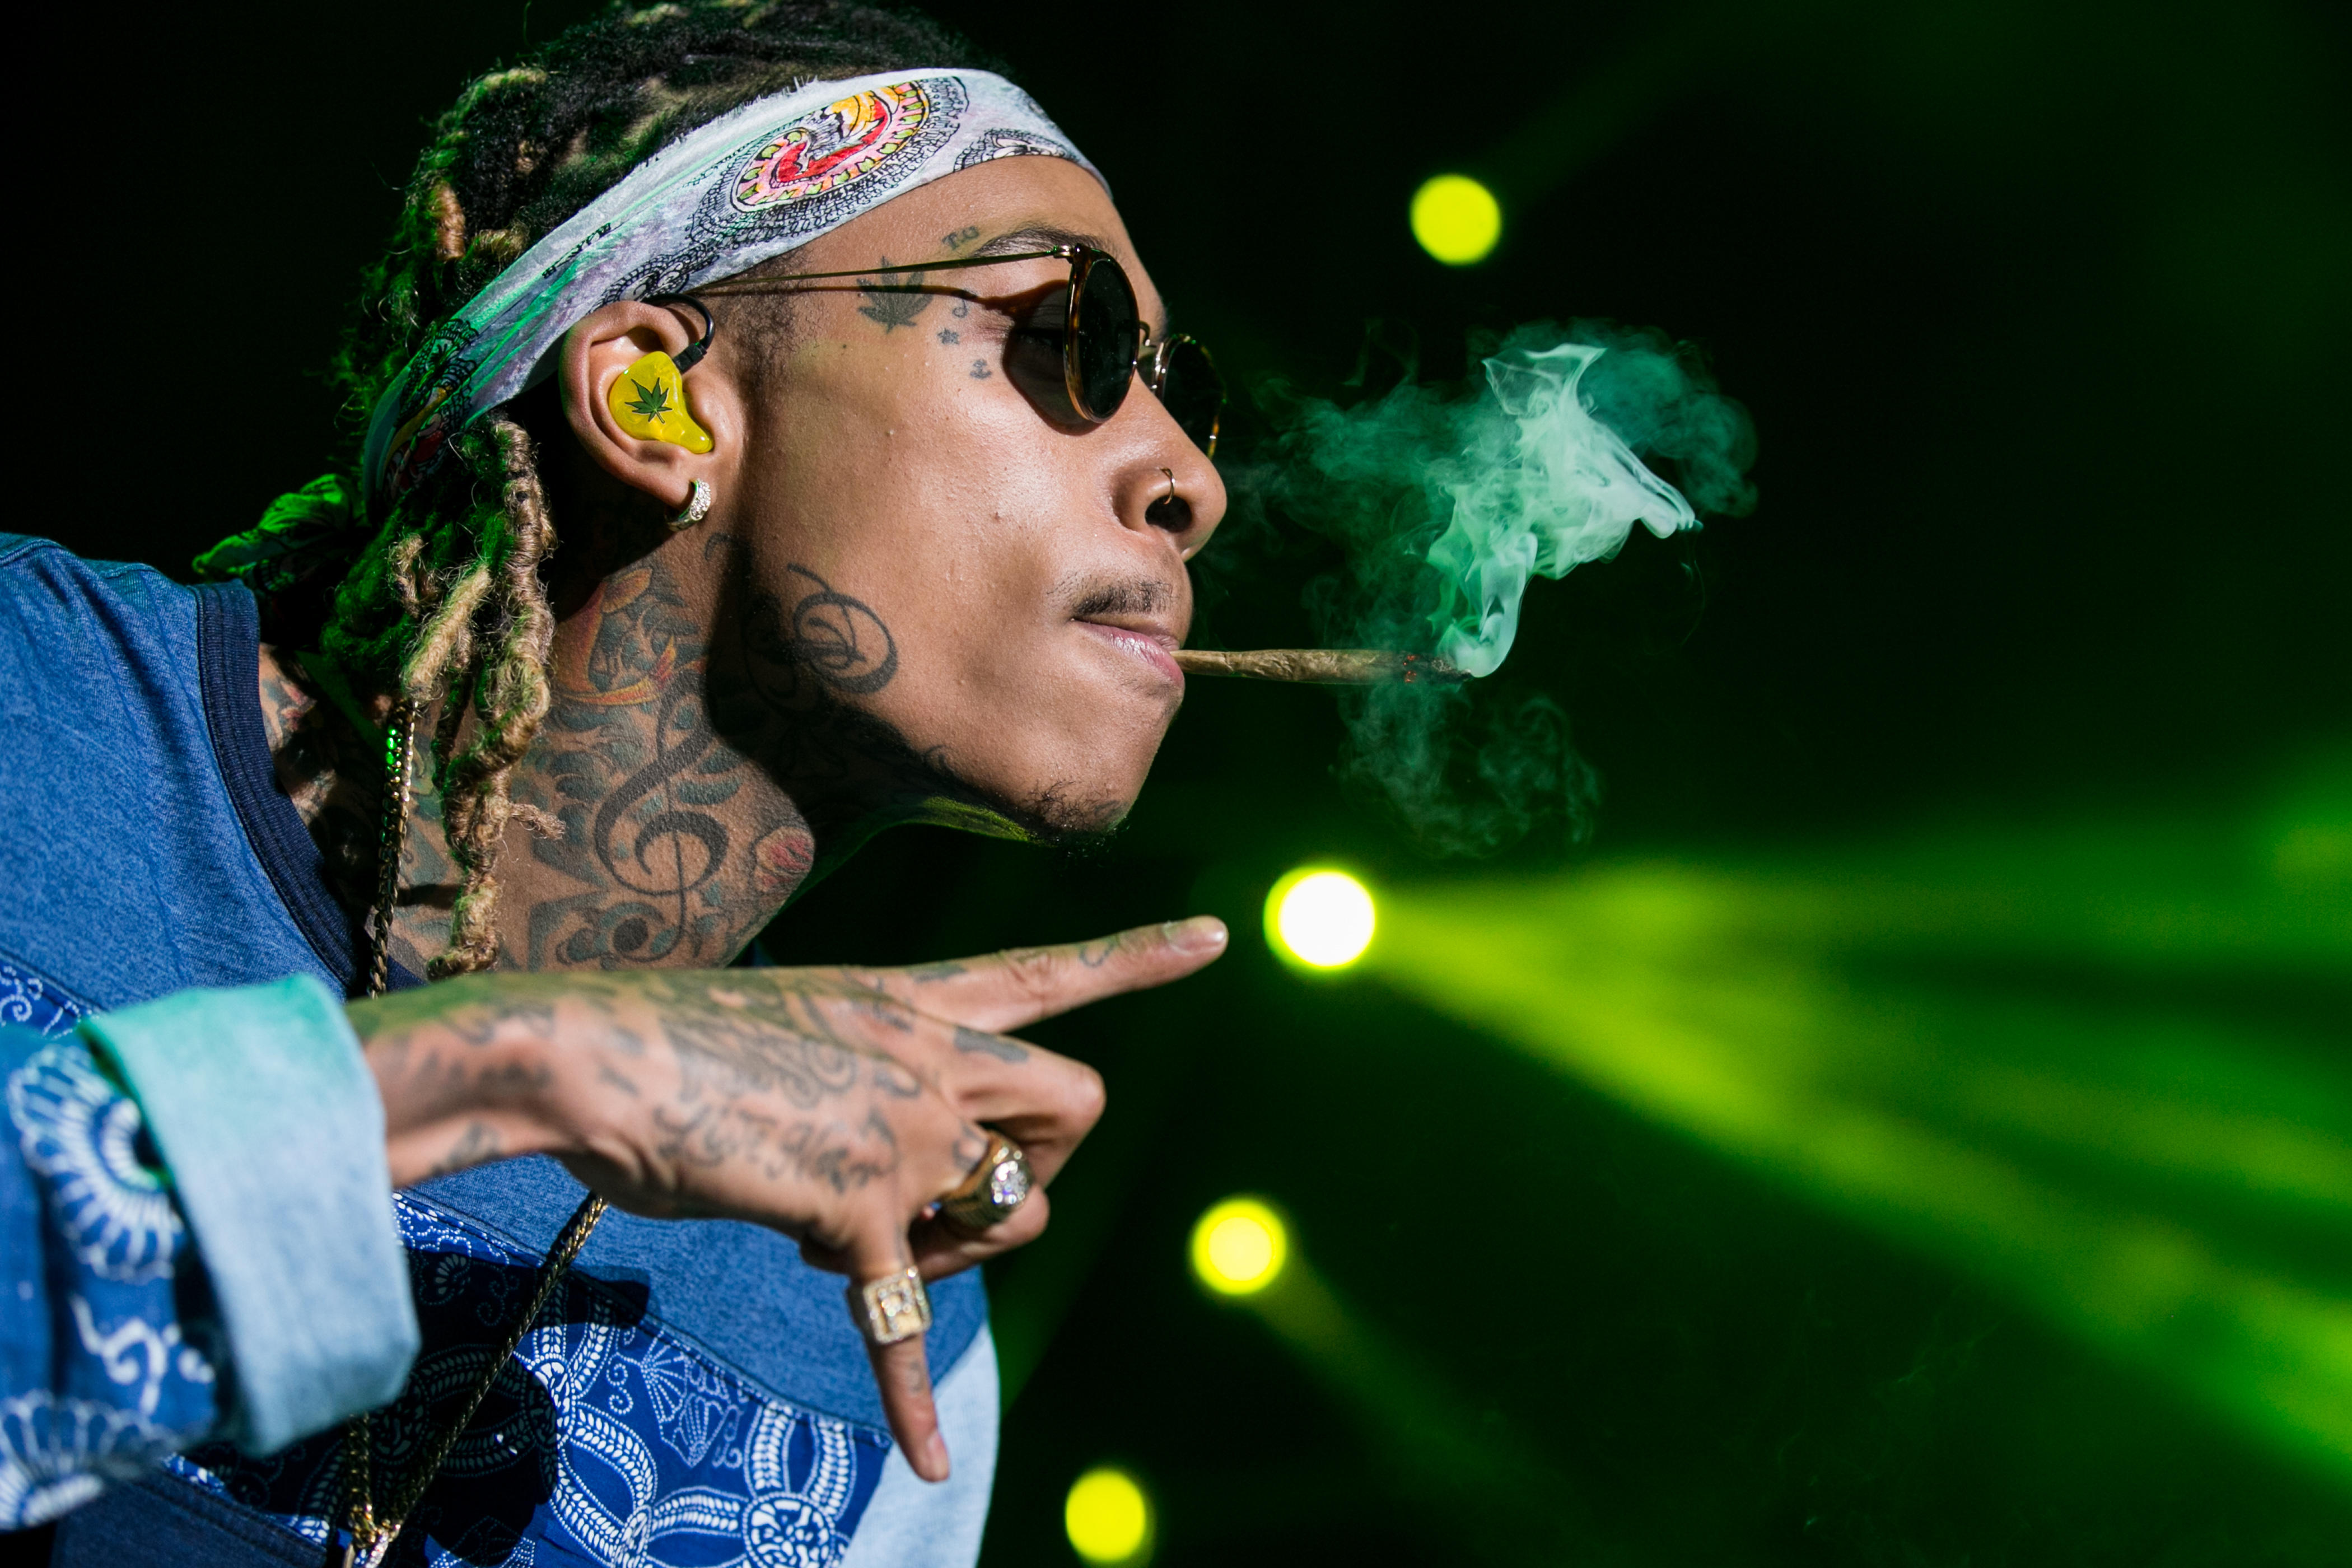 Famous pot smokers: Top 50 list of influential Americans